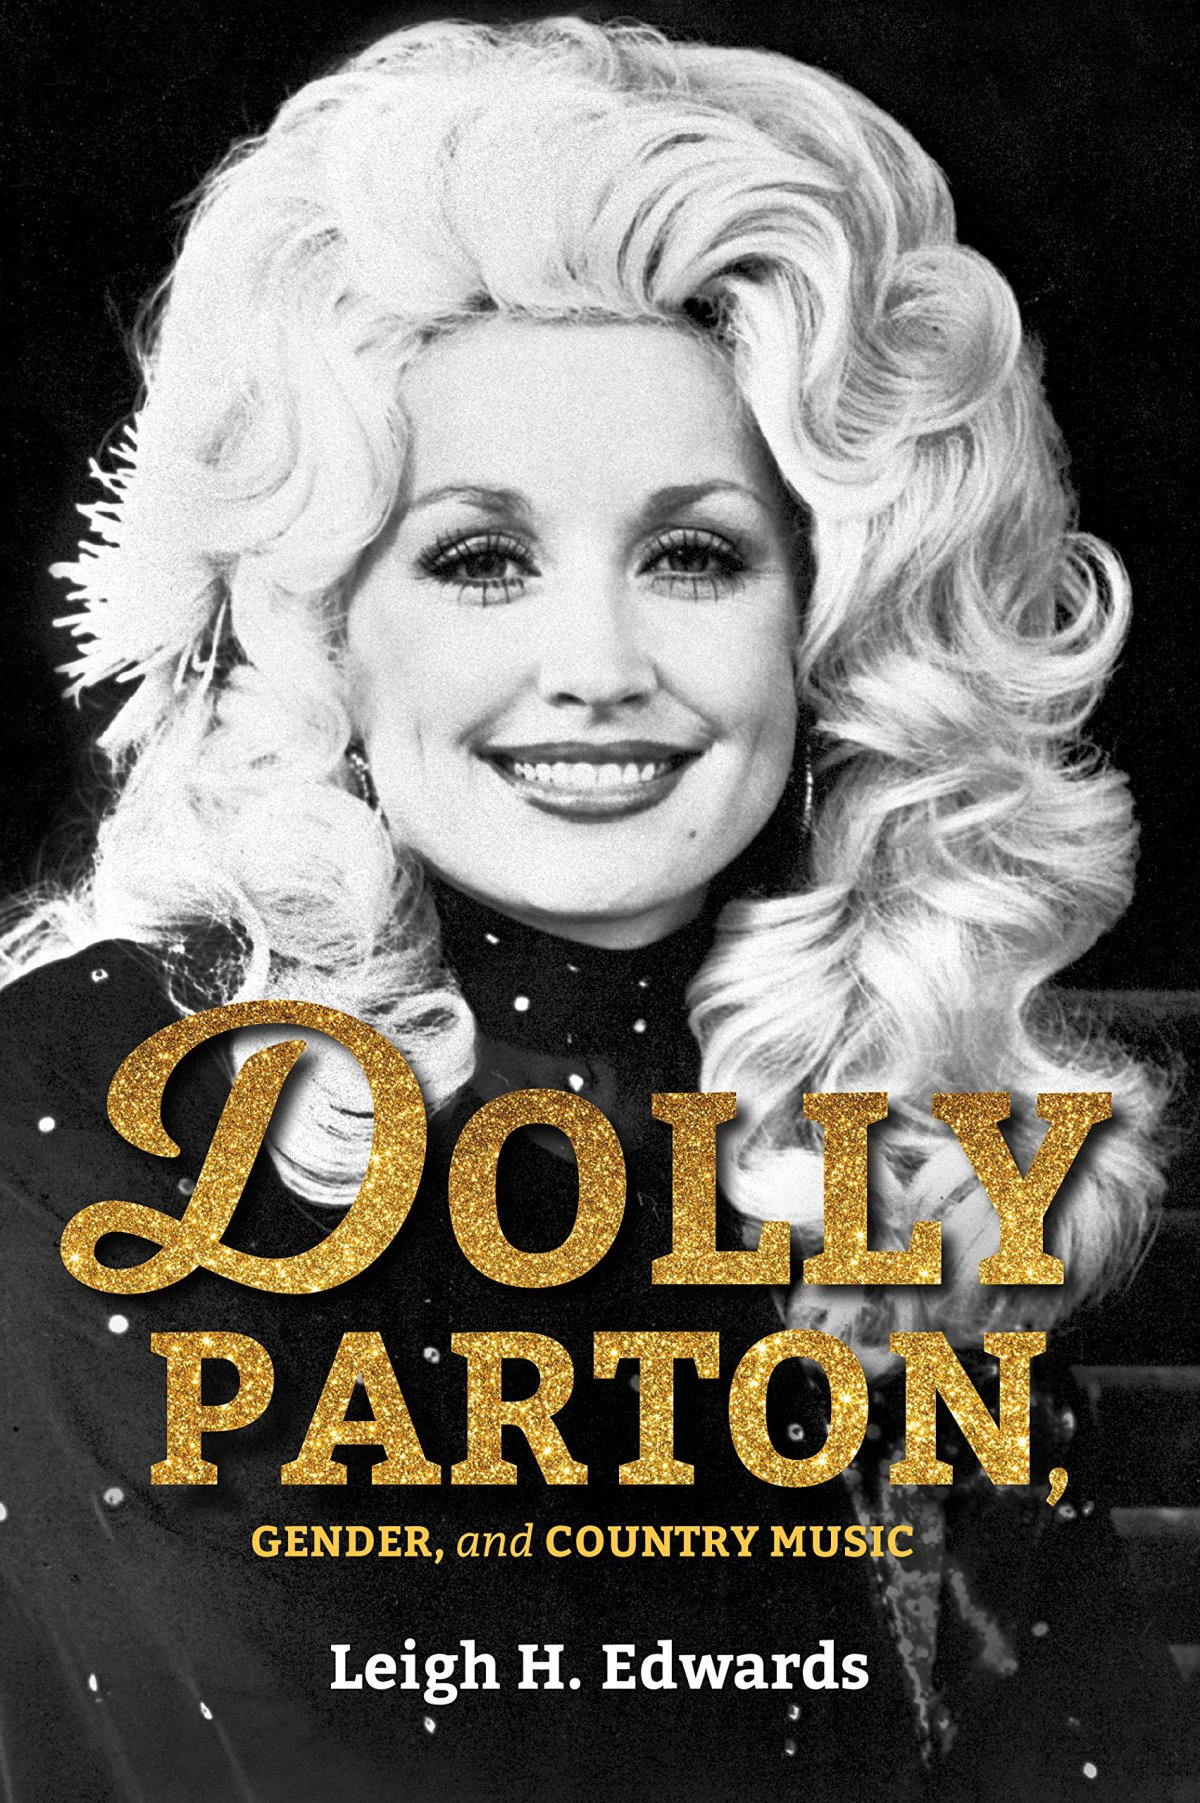 Dolly Parton, Gender, and Country Music Review